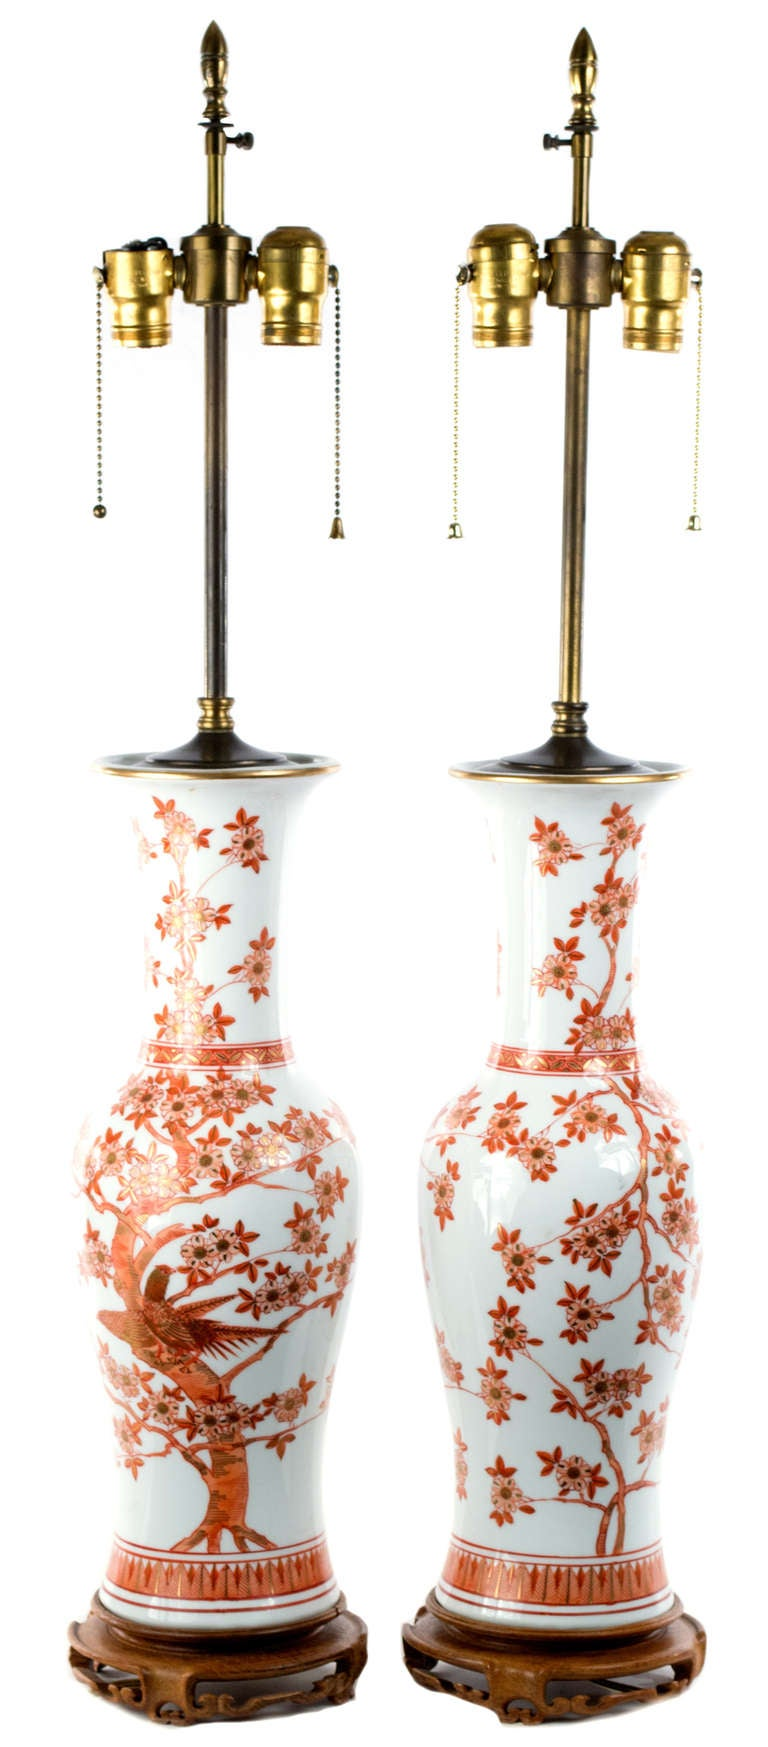 Placed on a wood stand and fitted with working brass lighting elements and silk shades,  each baluster vase features virtuosic gilt and red underglazed paintings of exotic birds among cherry blossoms.